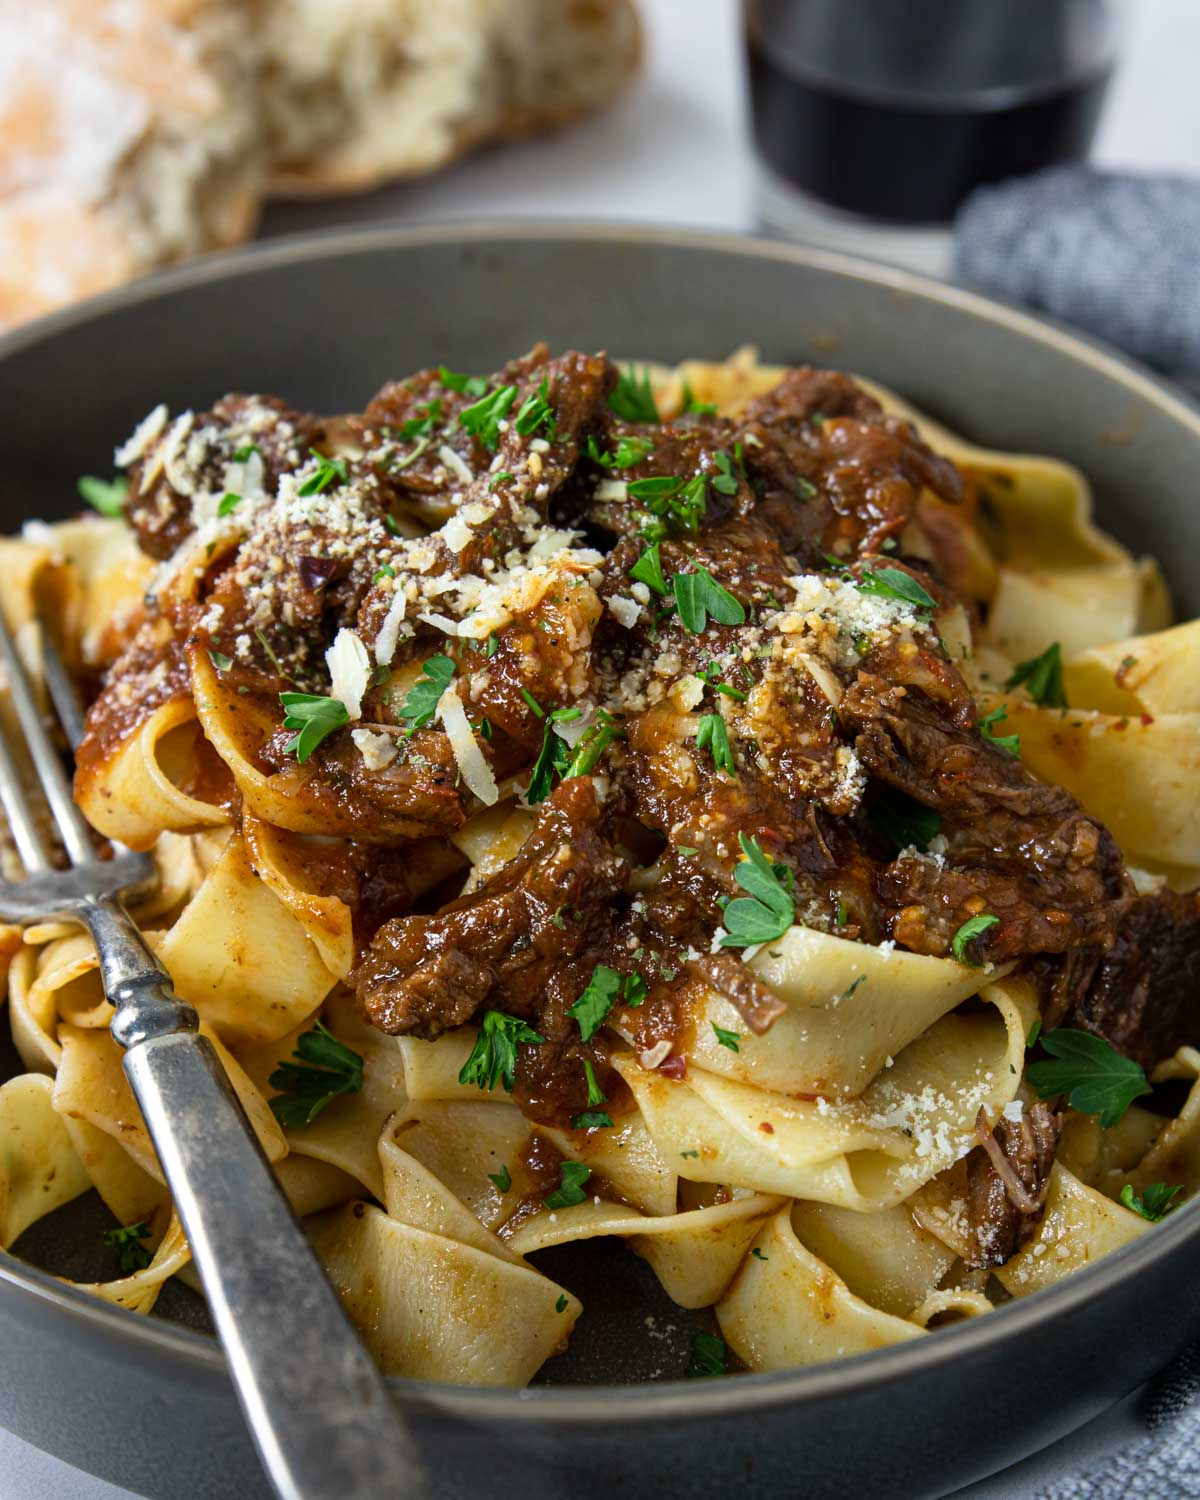 shredded beef ragu poured over cooked pasta